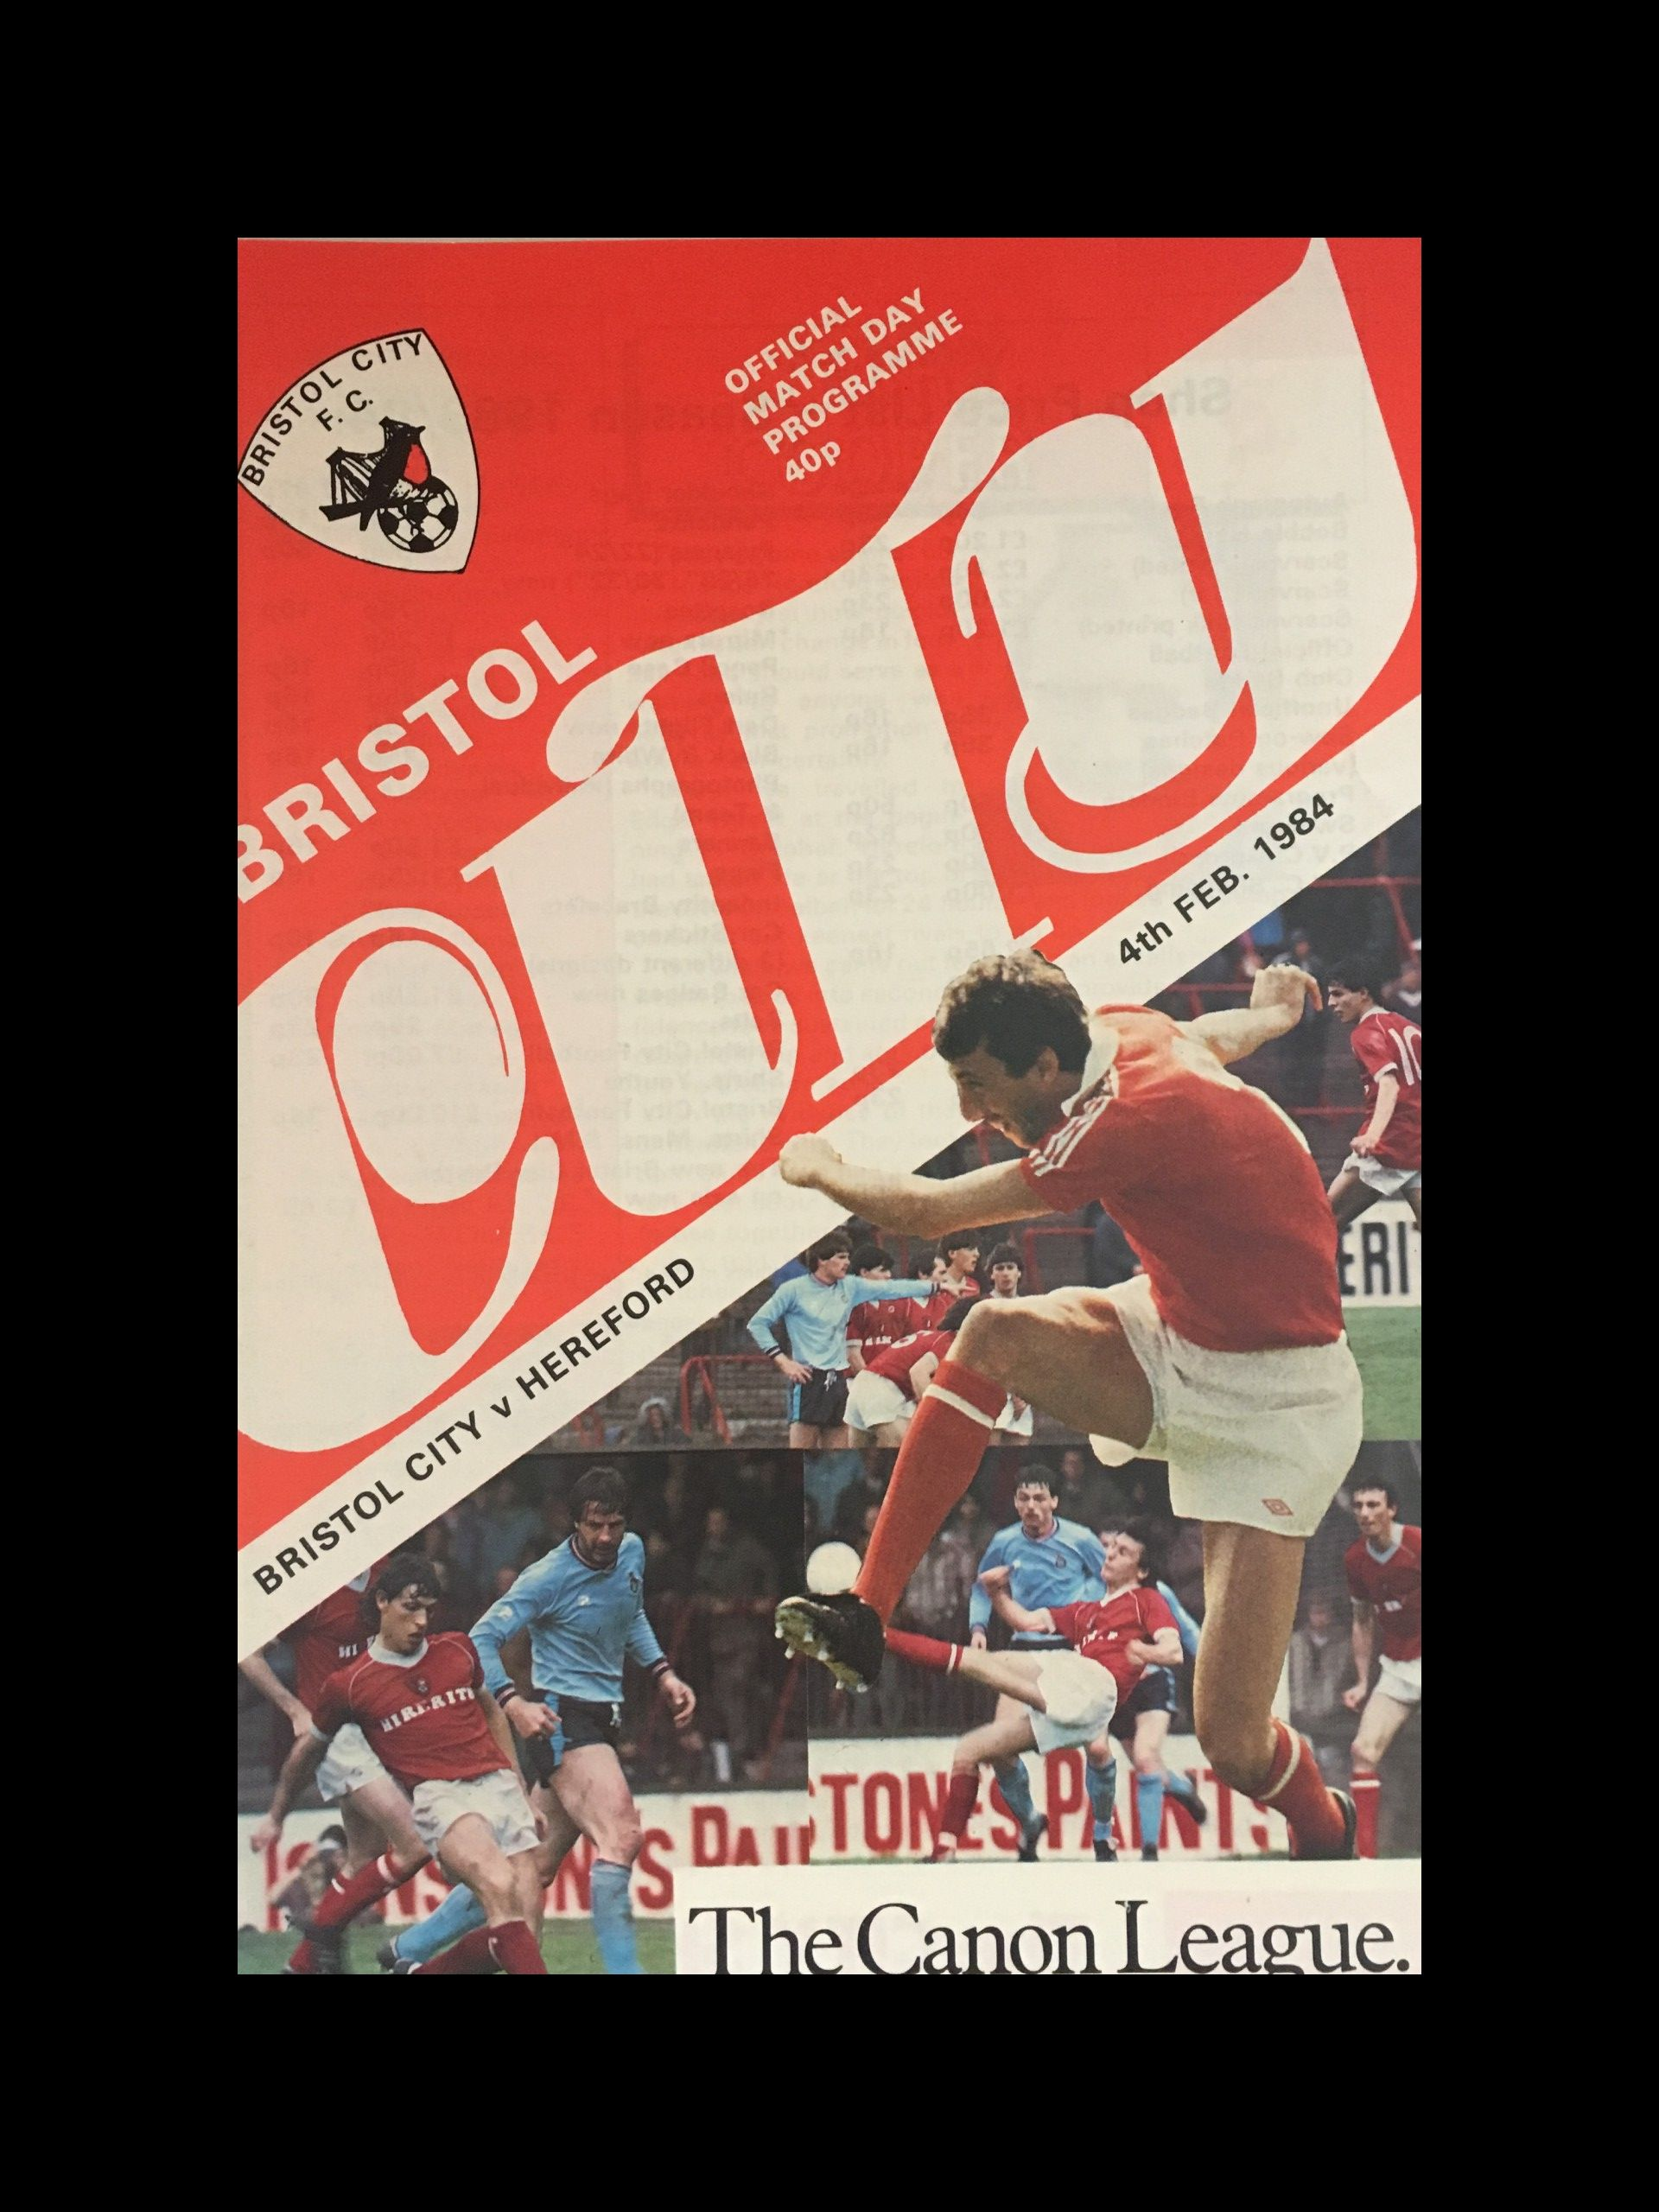 Bristol City v Hereford United 04-02-84 Programme